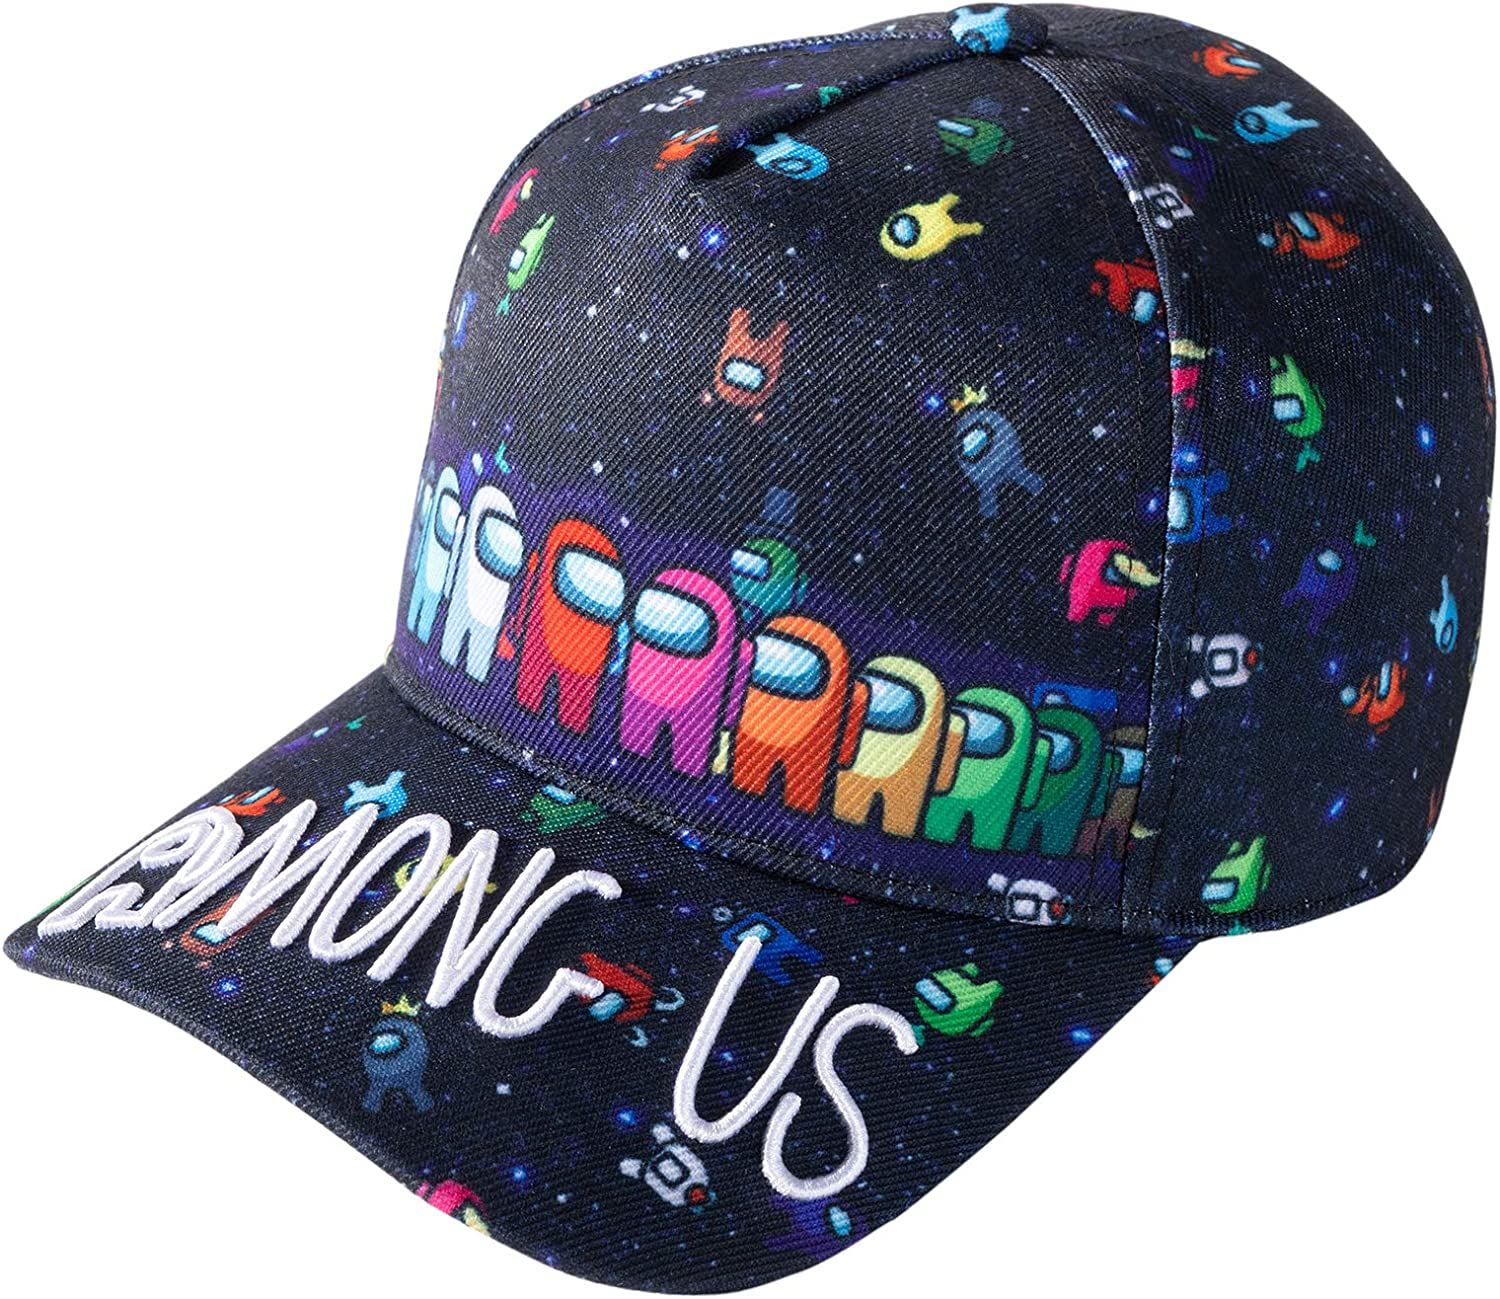 A mong USS Kids Baseball Cap, Adjustable Outdoor Sports Hat, Black Unisex Printed Embroidery Game Peripheral Cap (Cap-1): Clothing